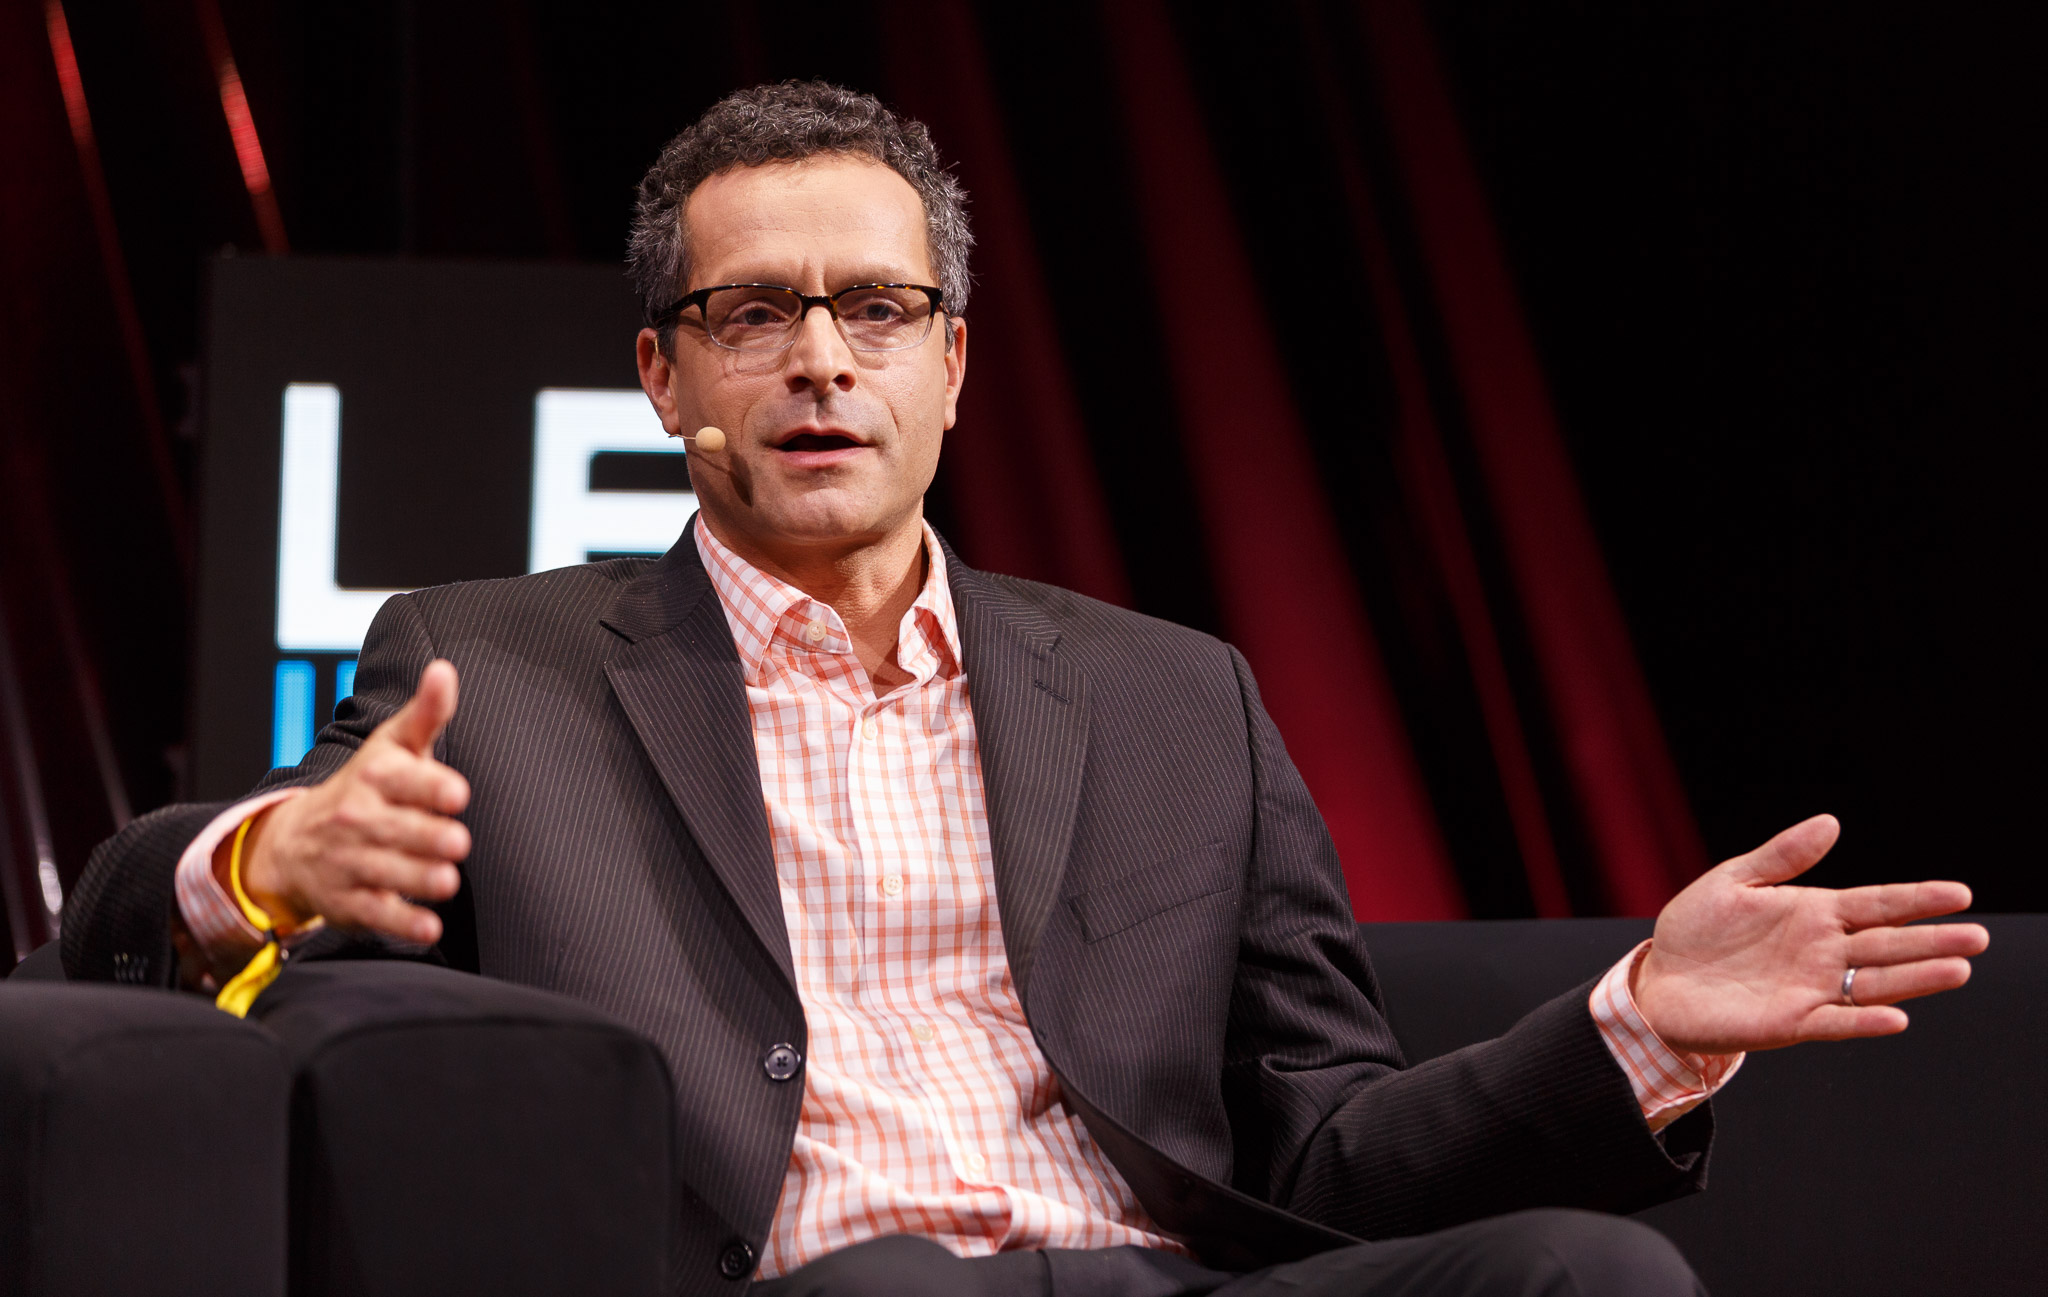 Bradley Horowitz touts Google's Hangouts communication app at the LeWeb conference in December 2014.